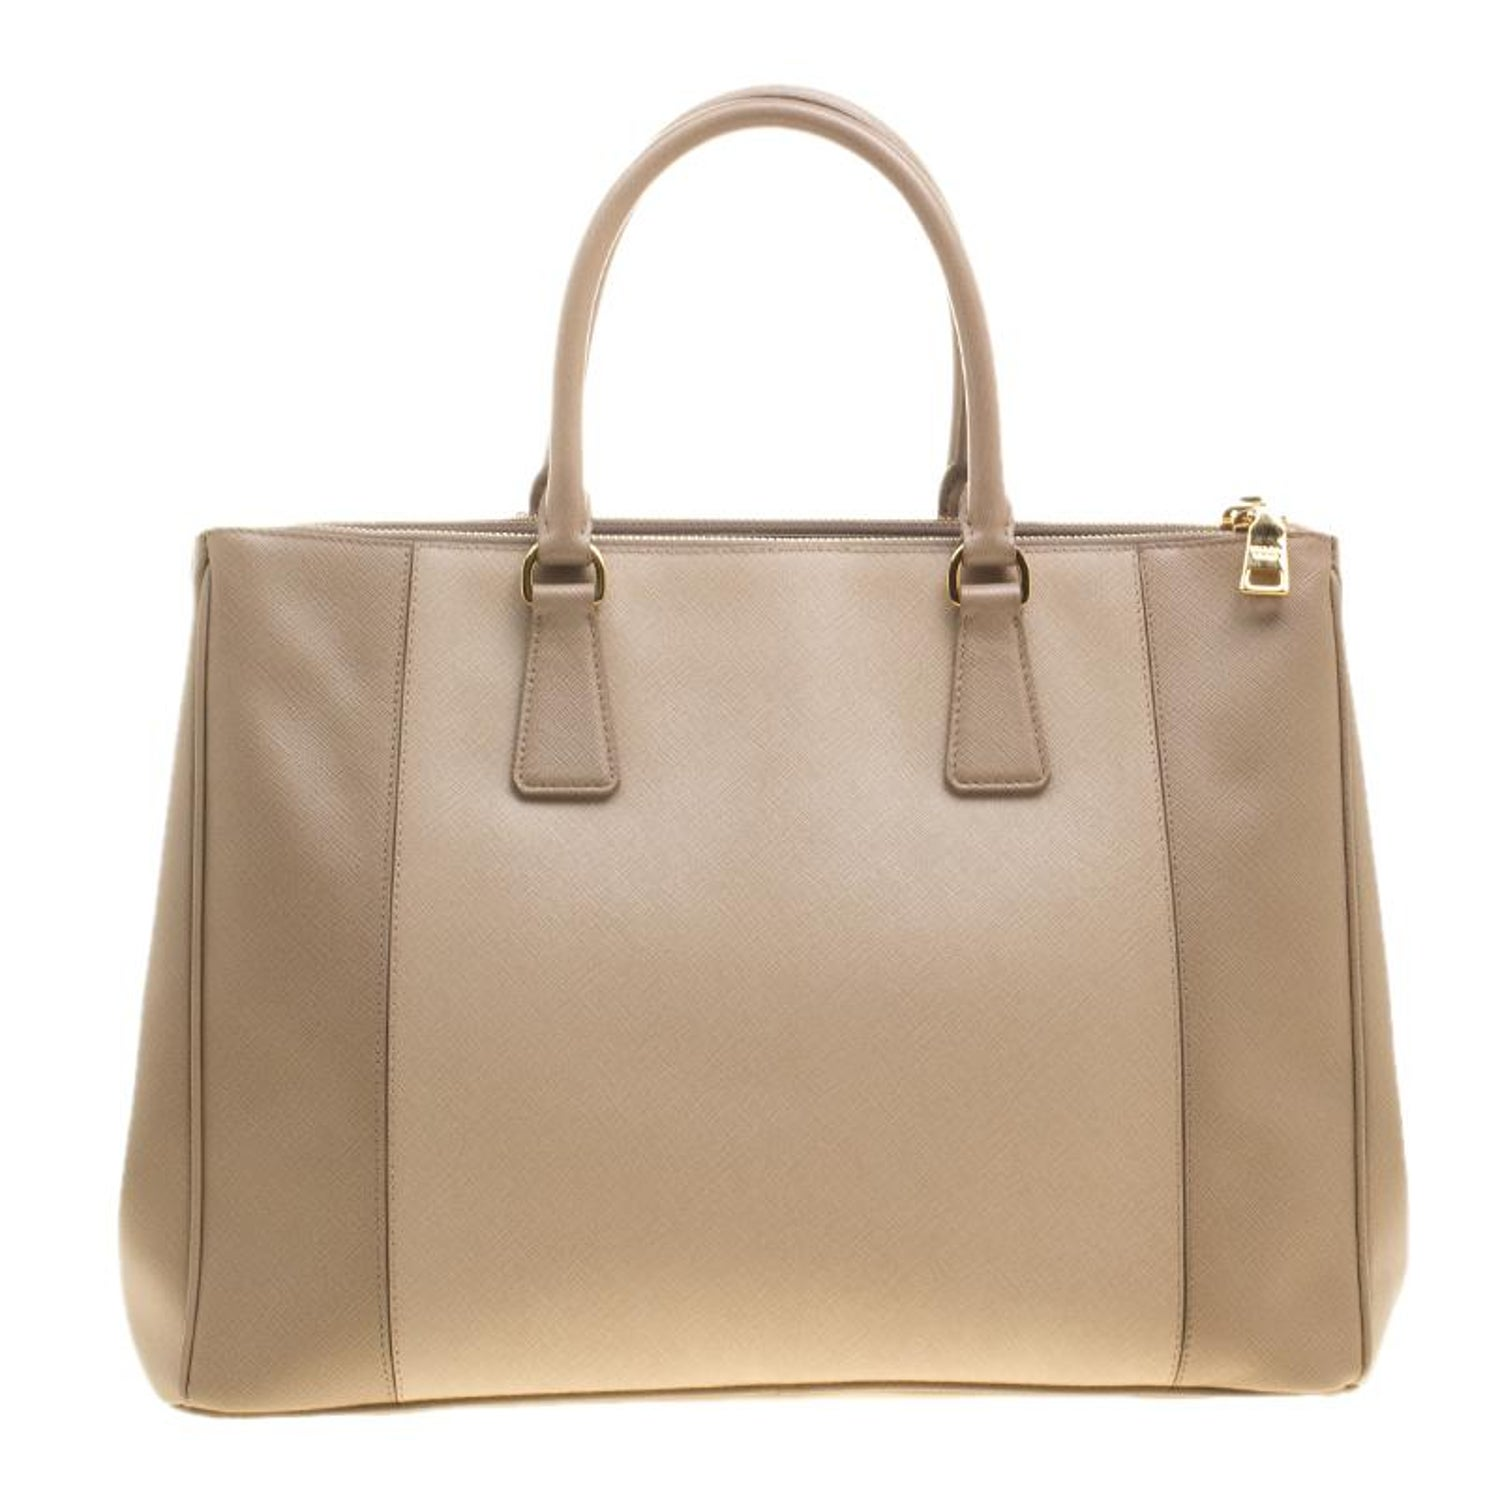 0d11d498a263 Prada Beige Saffiano Lux Leather Large Double Zip Tote For Sale at 1stdibs